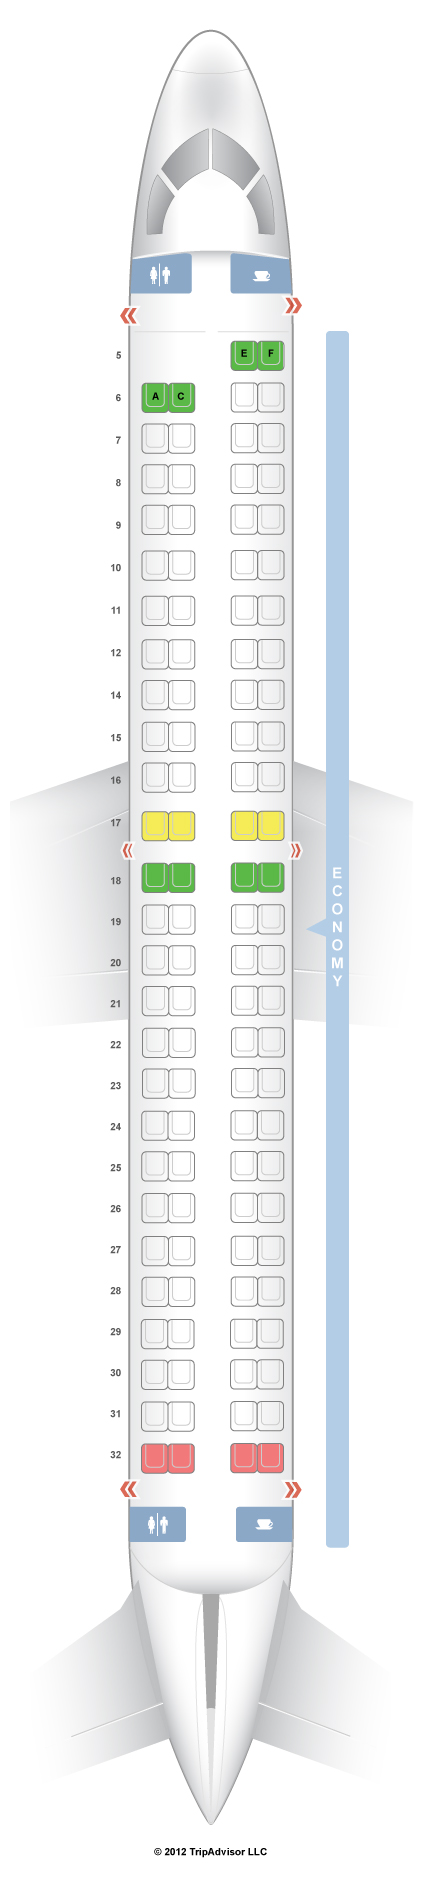 Frontier Airlines Seating Chart Emb E90 Brokeasshome Com